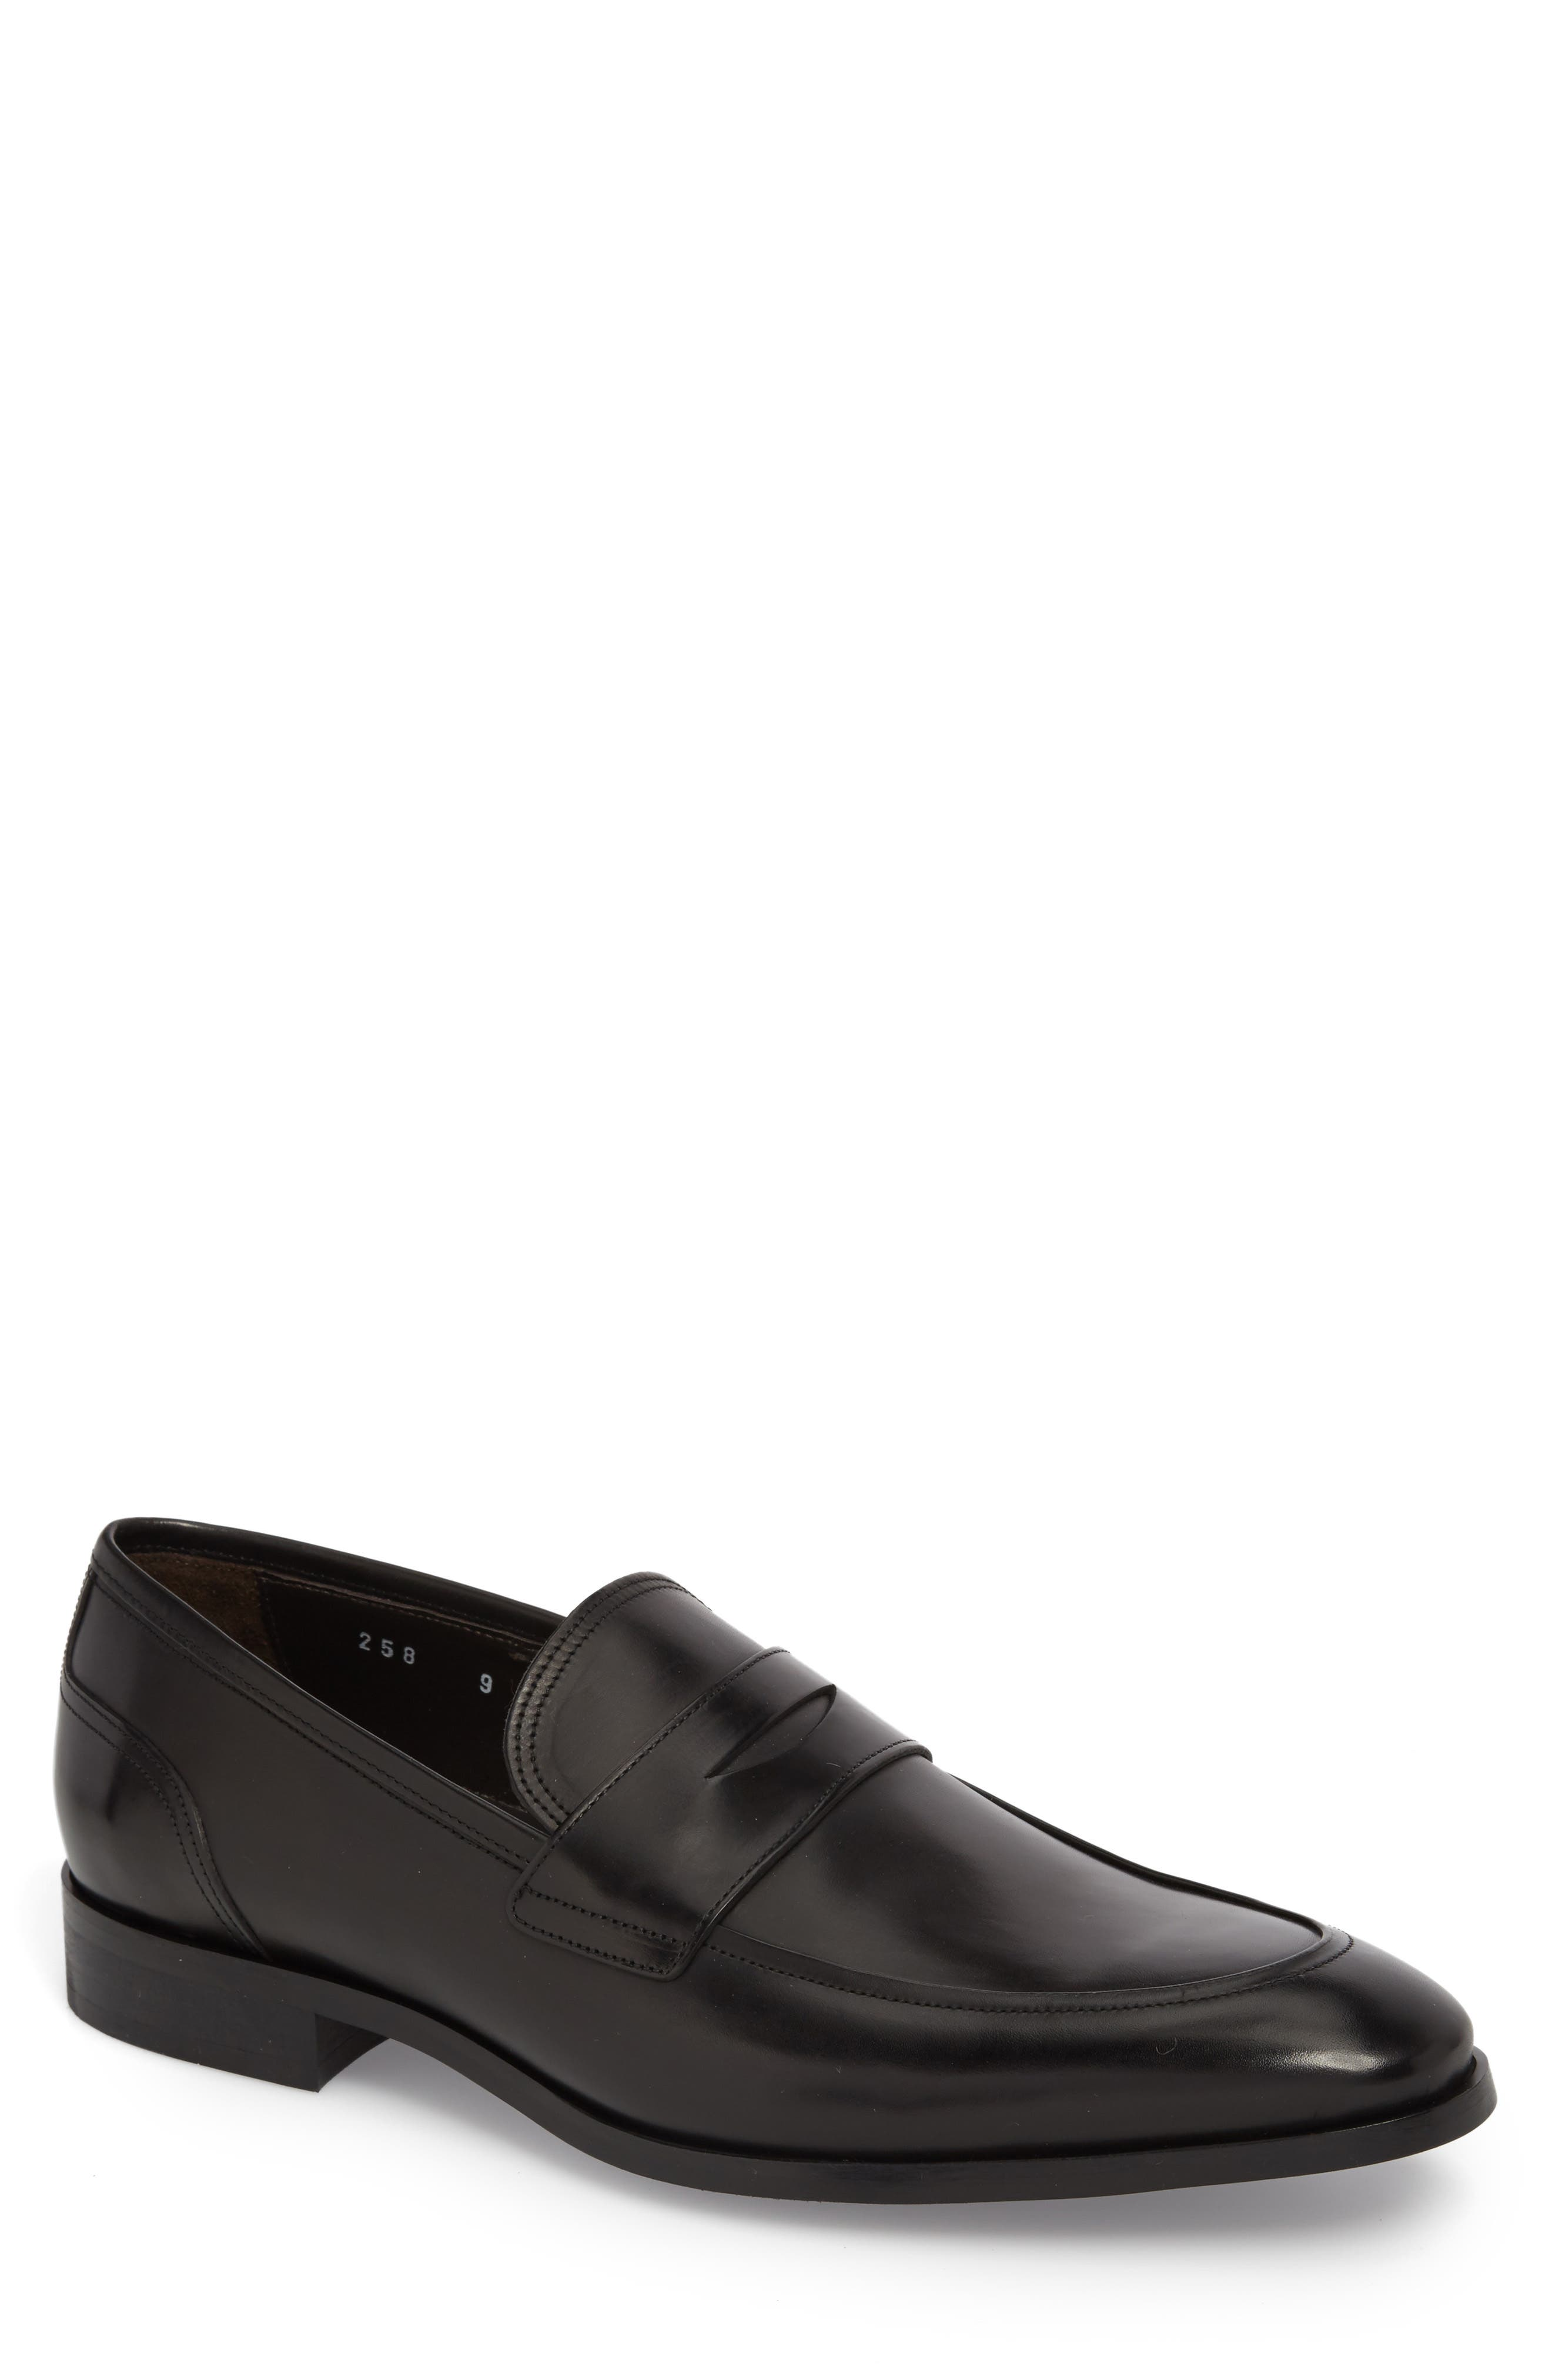 Deane Penny Loafer,                             Main thumbnail 1, color,                             BLACK LEATHER